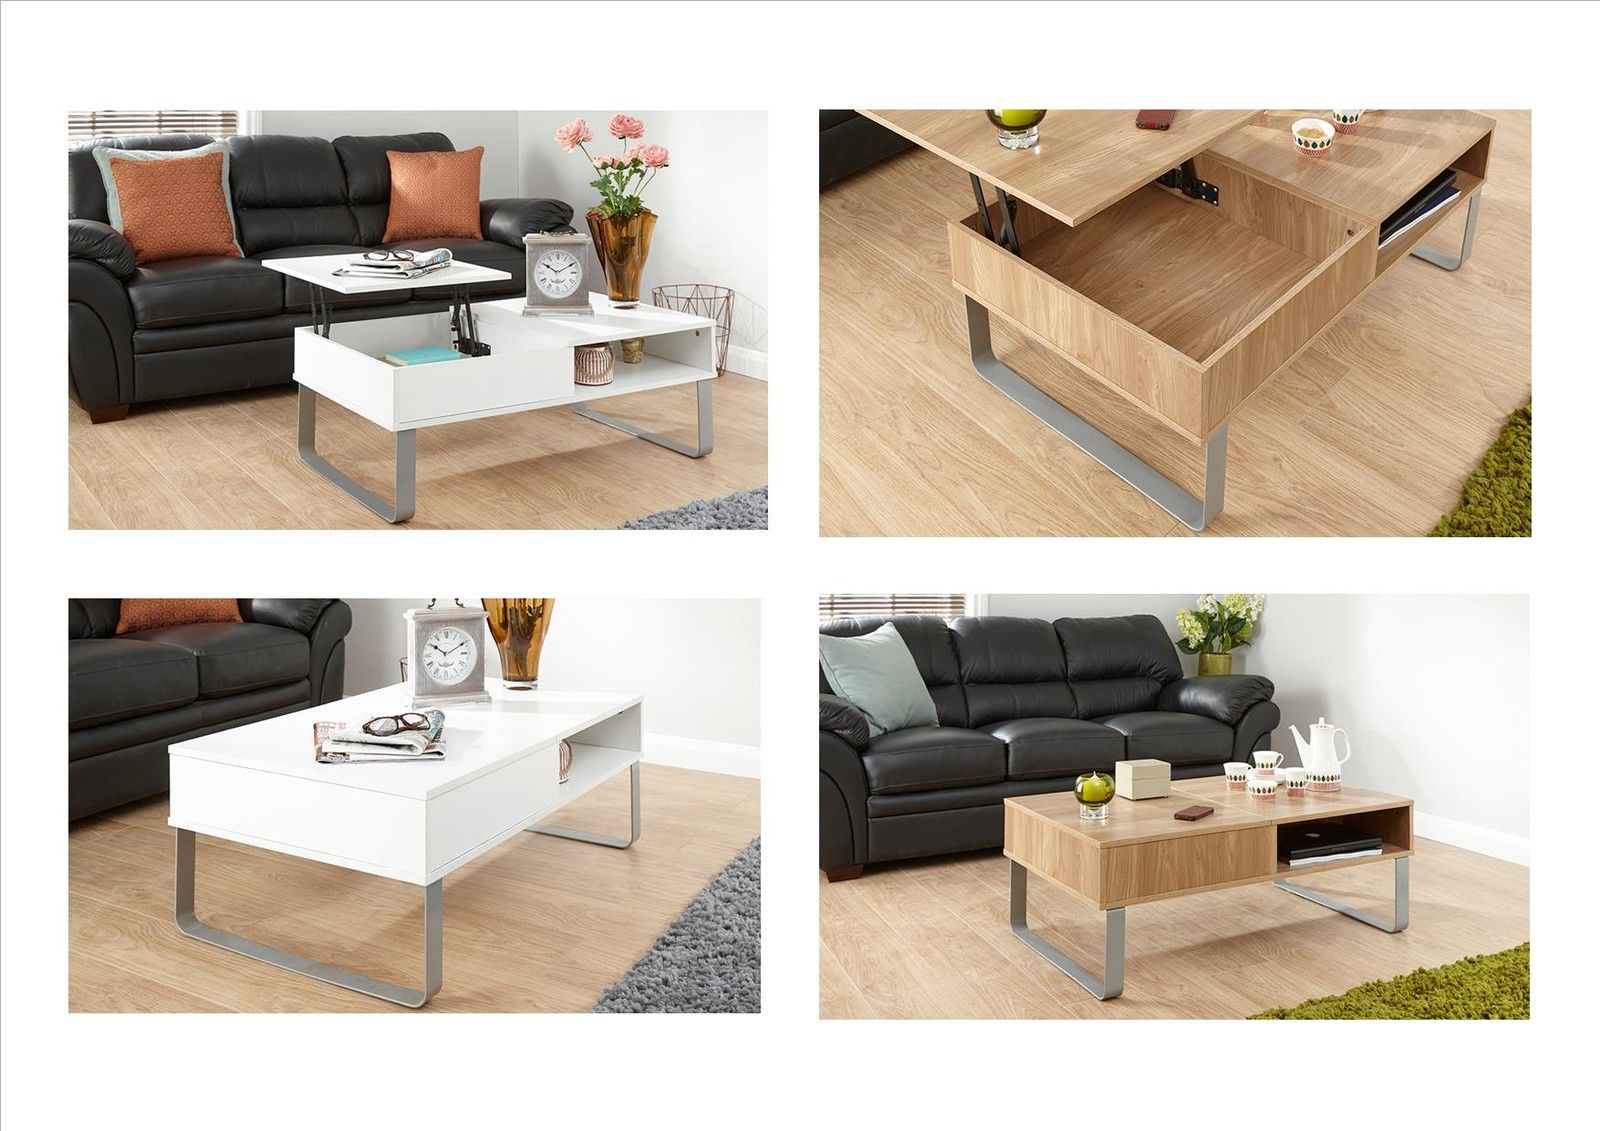 Aspen Lift Up Top Coffee Table with Split Level Storage